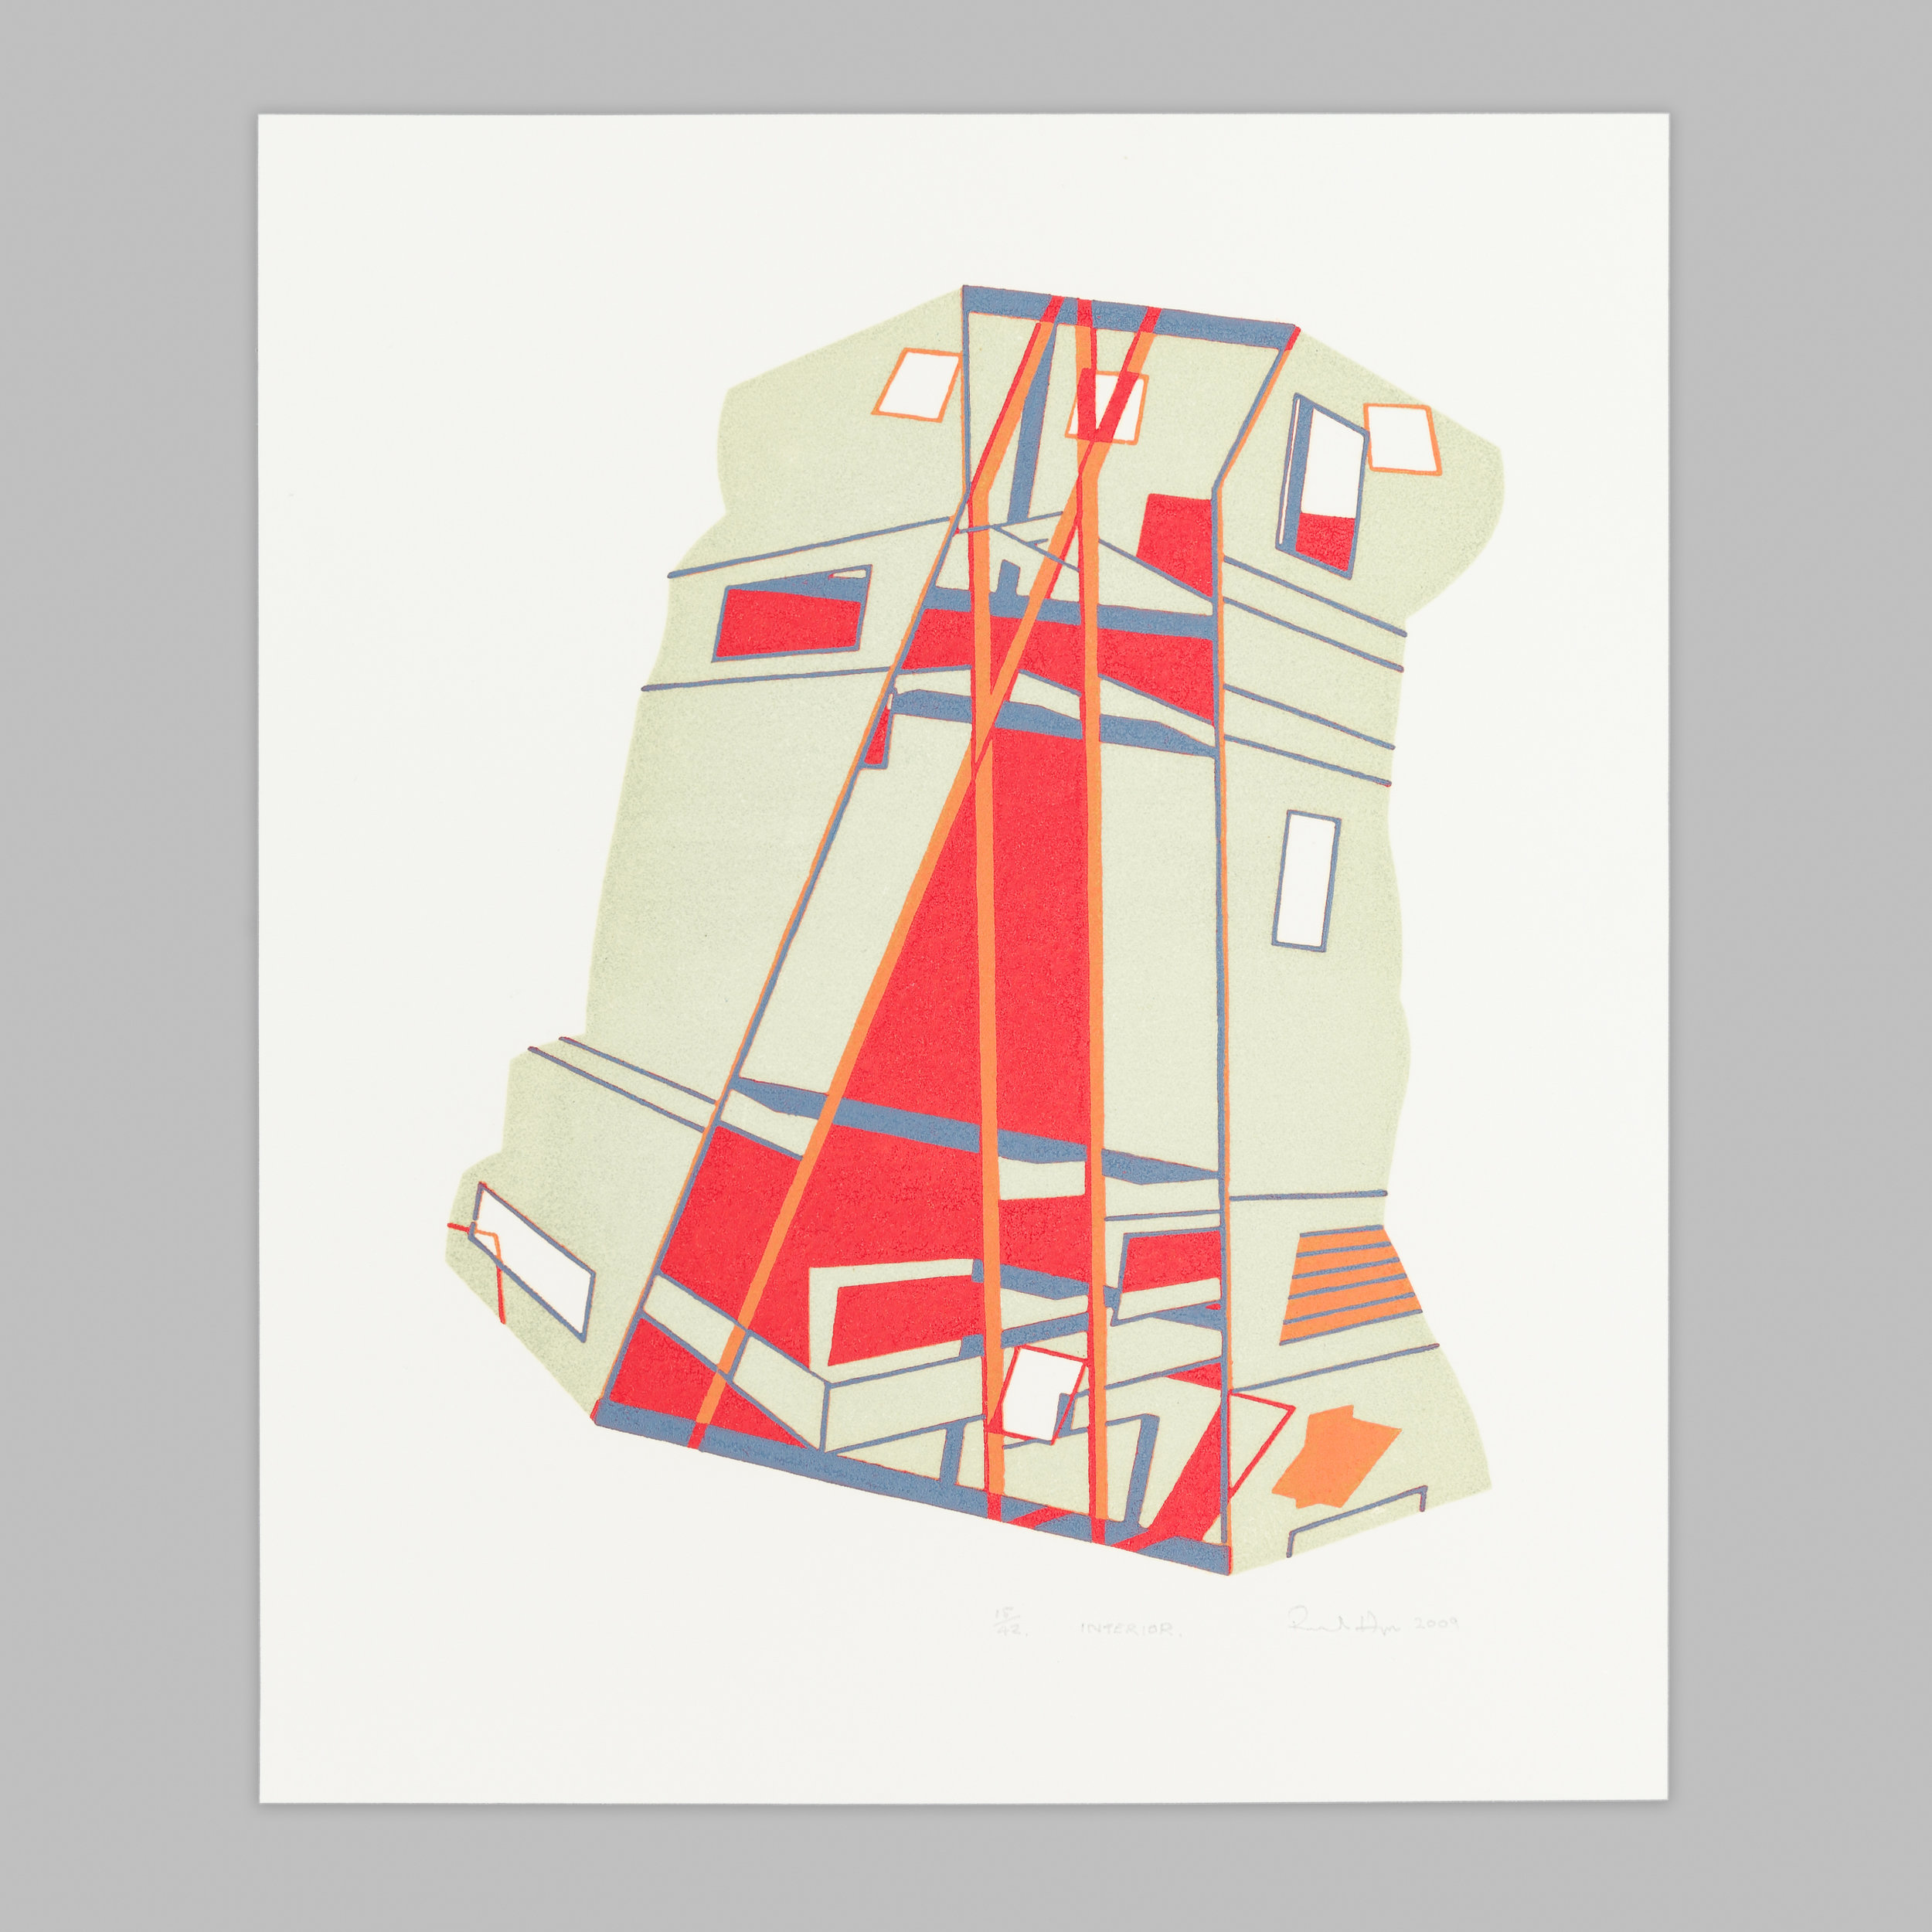 An abstract wood reduction engraving showing geometric forms - bold red and orange areas stand out against more muted tones.